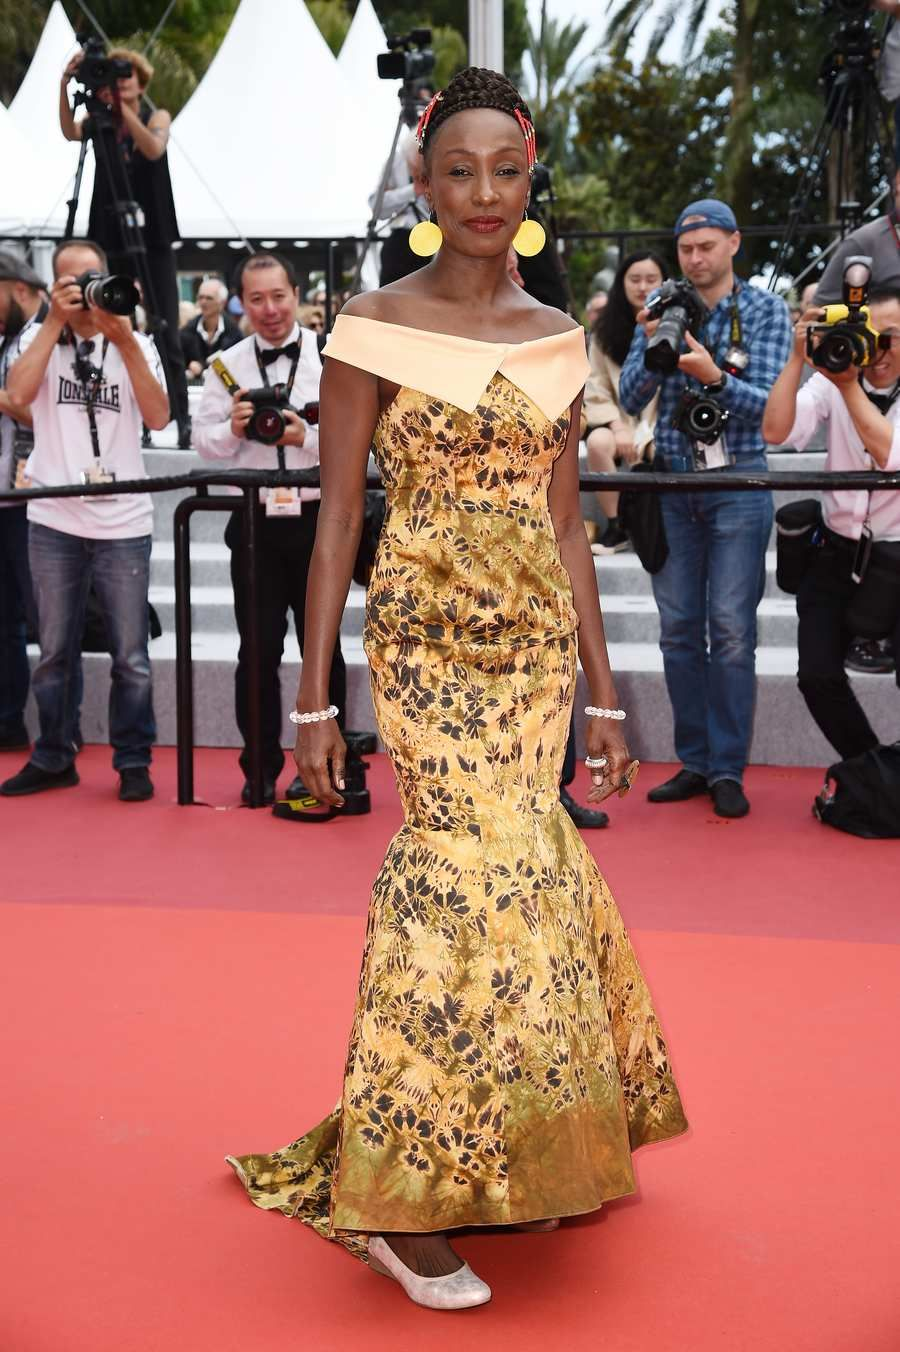 The Cannes Red Carpet Is Having A Very Good Year Peach Gown Fashion Week Cool Outfits